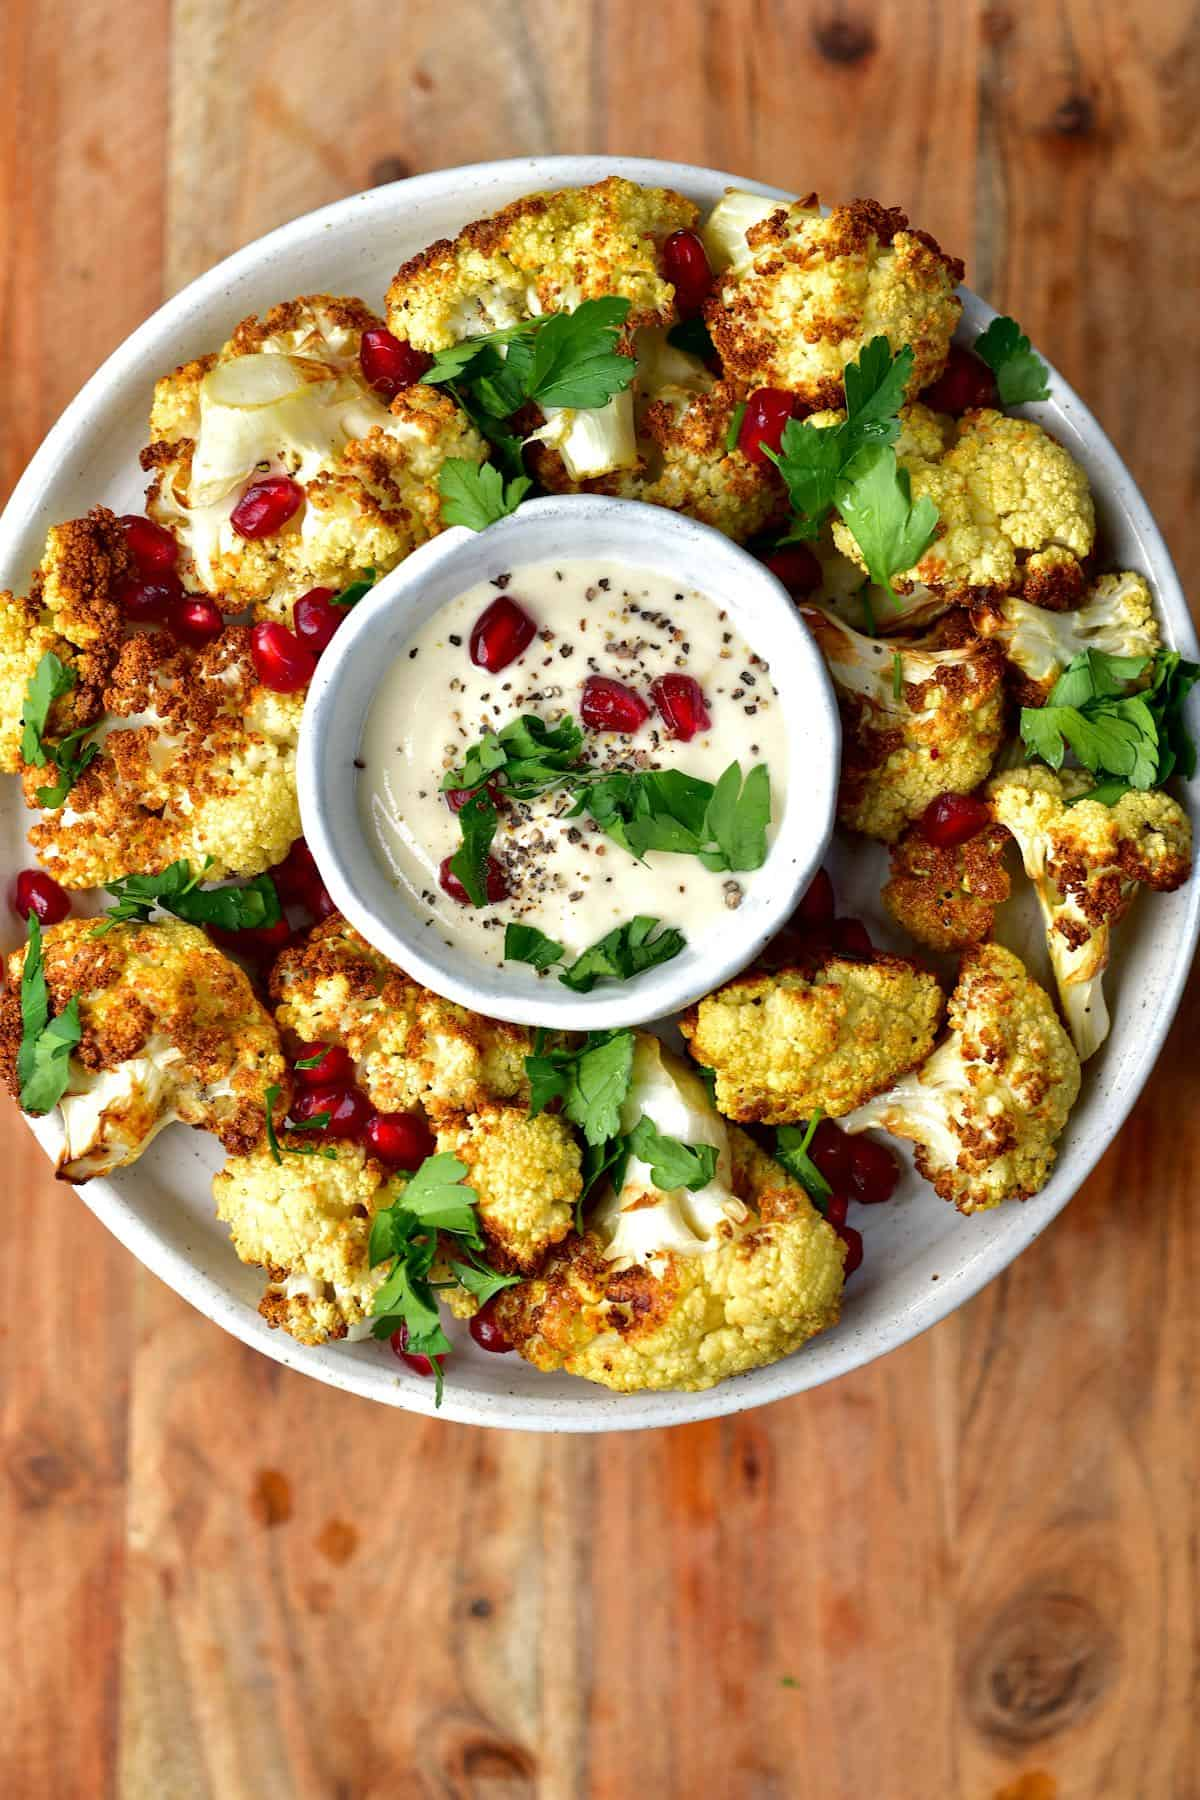 A serving of air fryer cauliflower topped with pomegranate seeds and parsley and a small bowl with tahini sauce